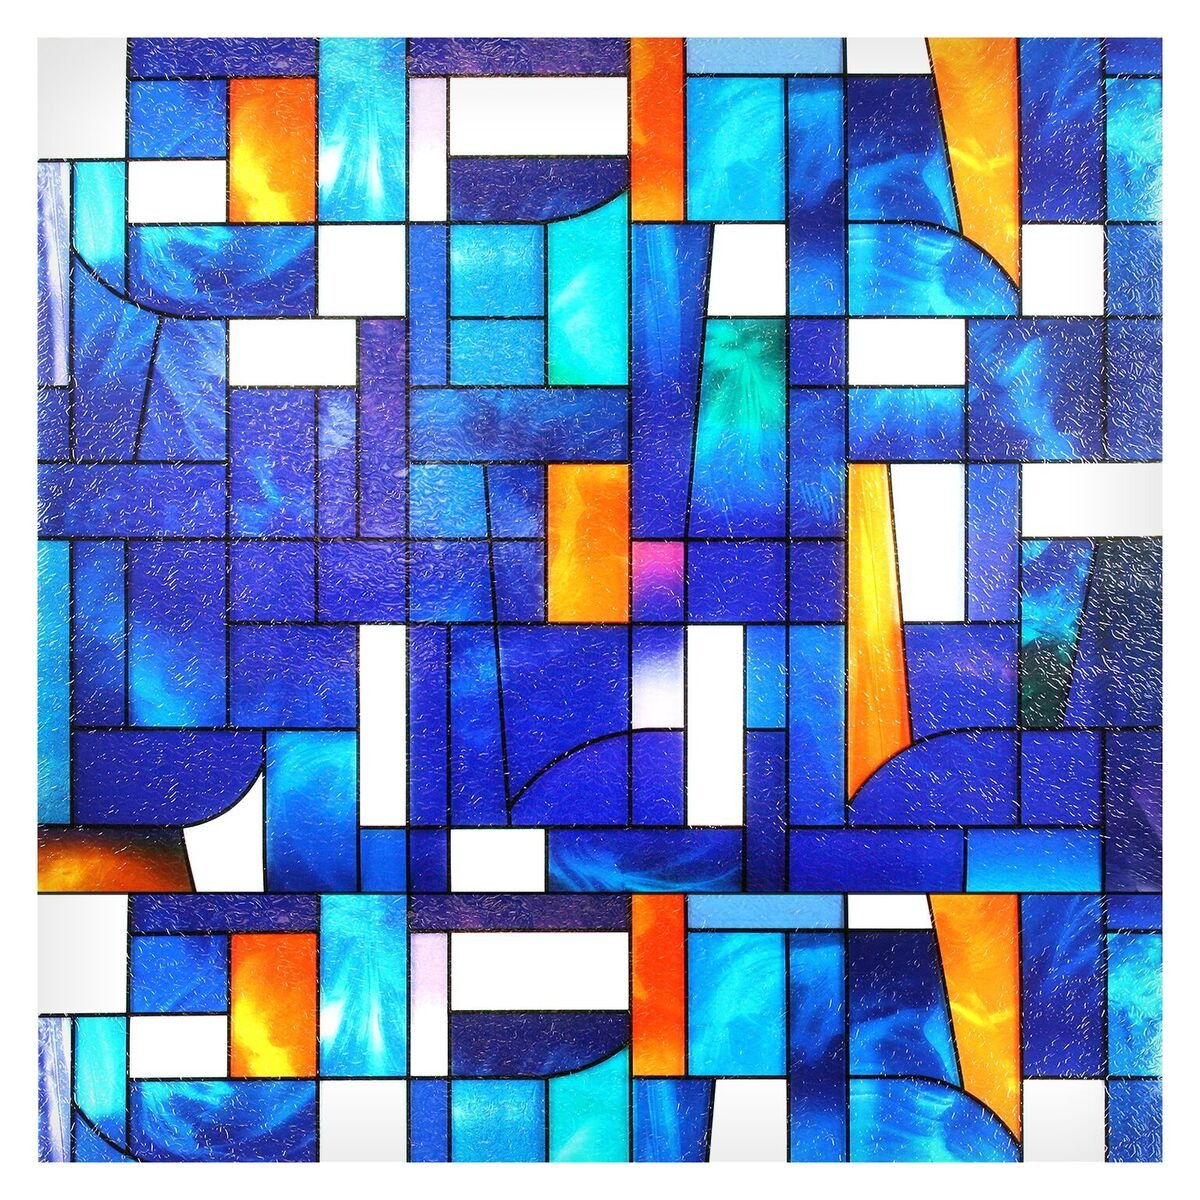 Buydecorativefilm BDF 3ABST2 Window Film Abstract Stained Glass (36'' X 53'' (2 Continuous Patterns)) by Buydecorativefilm